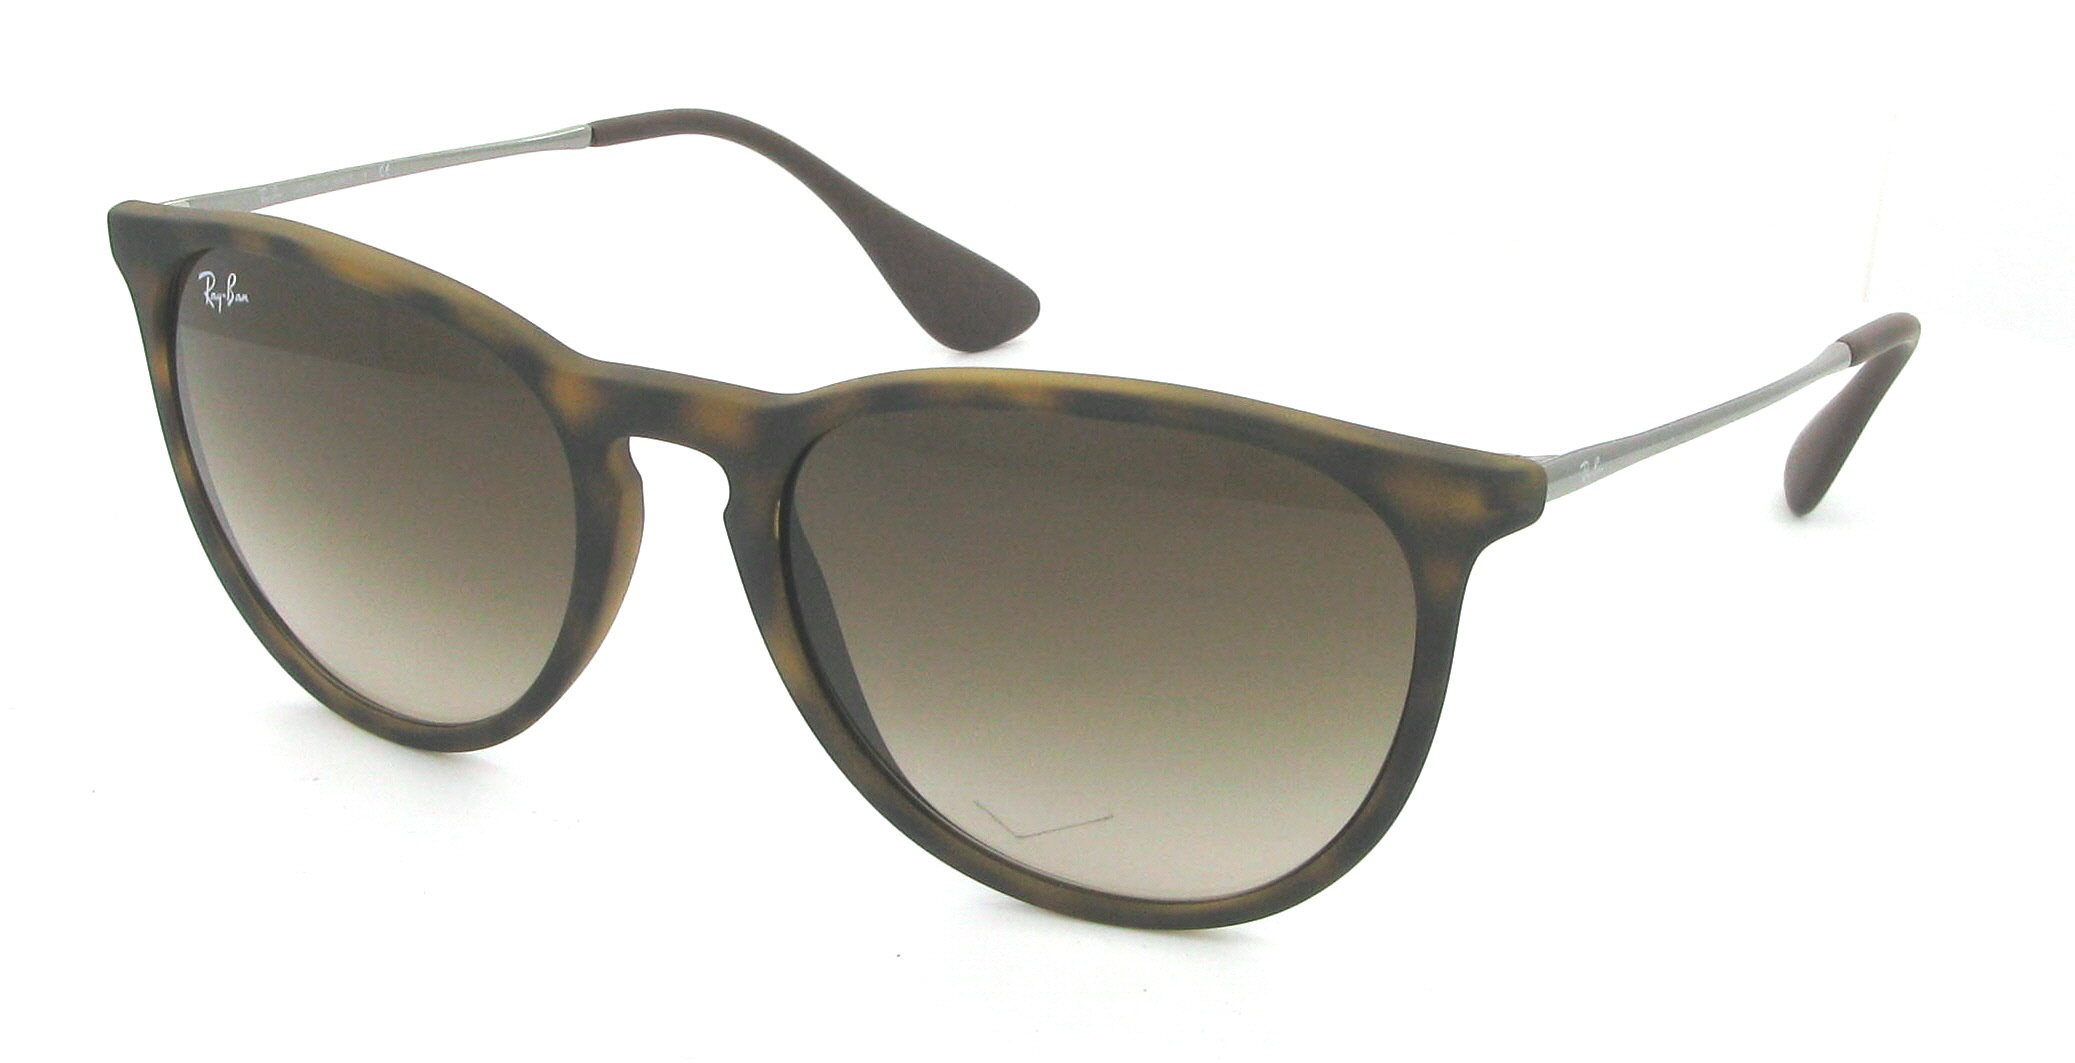 ray ban clubmaster femme optical center veins treatment